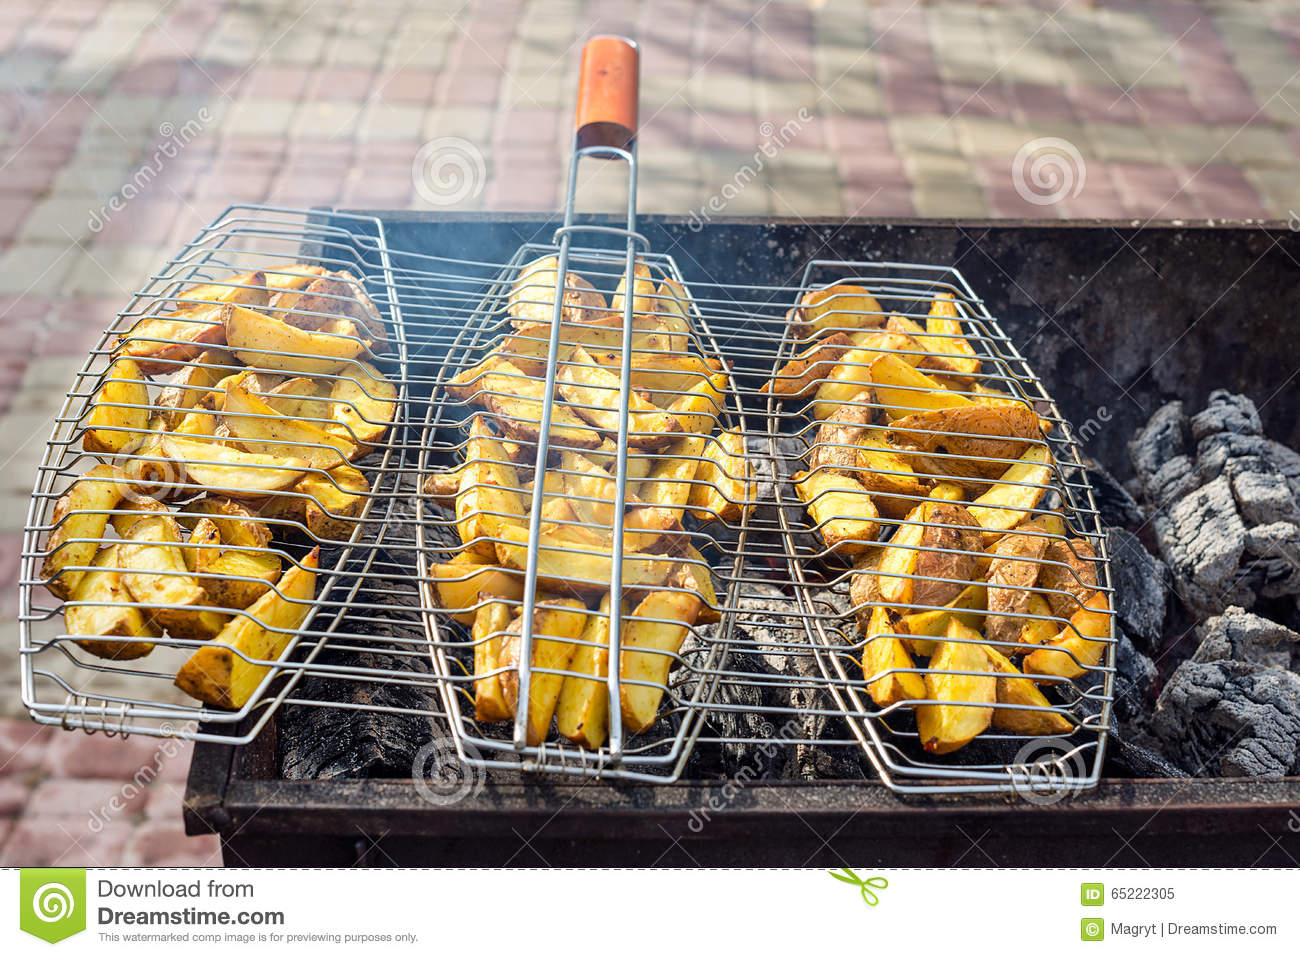 Fried potatoes on grill. Outdoors barbecue weekend.